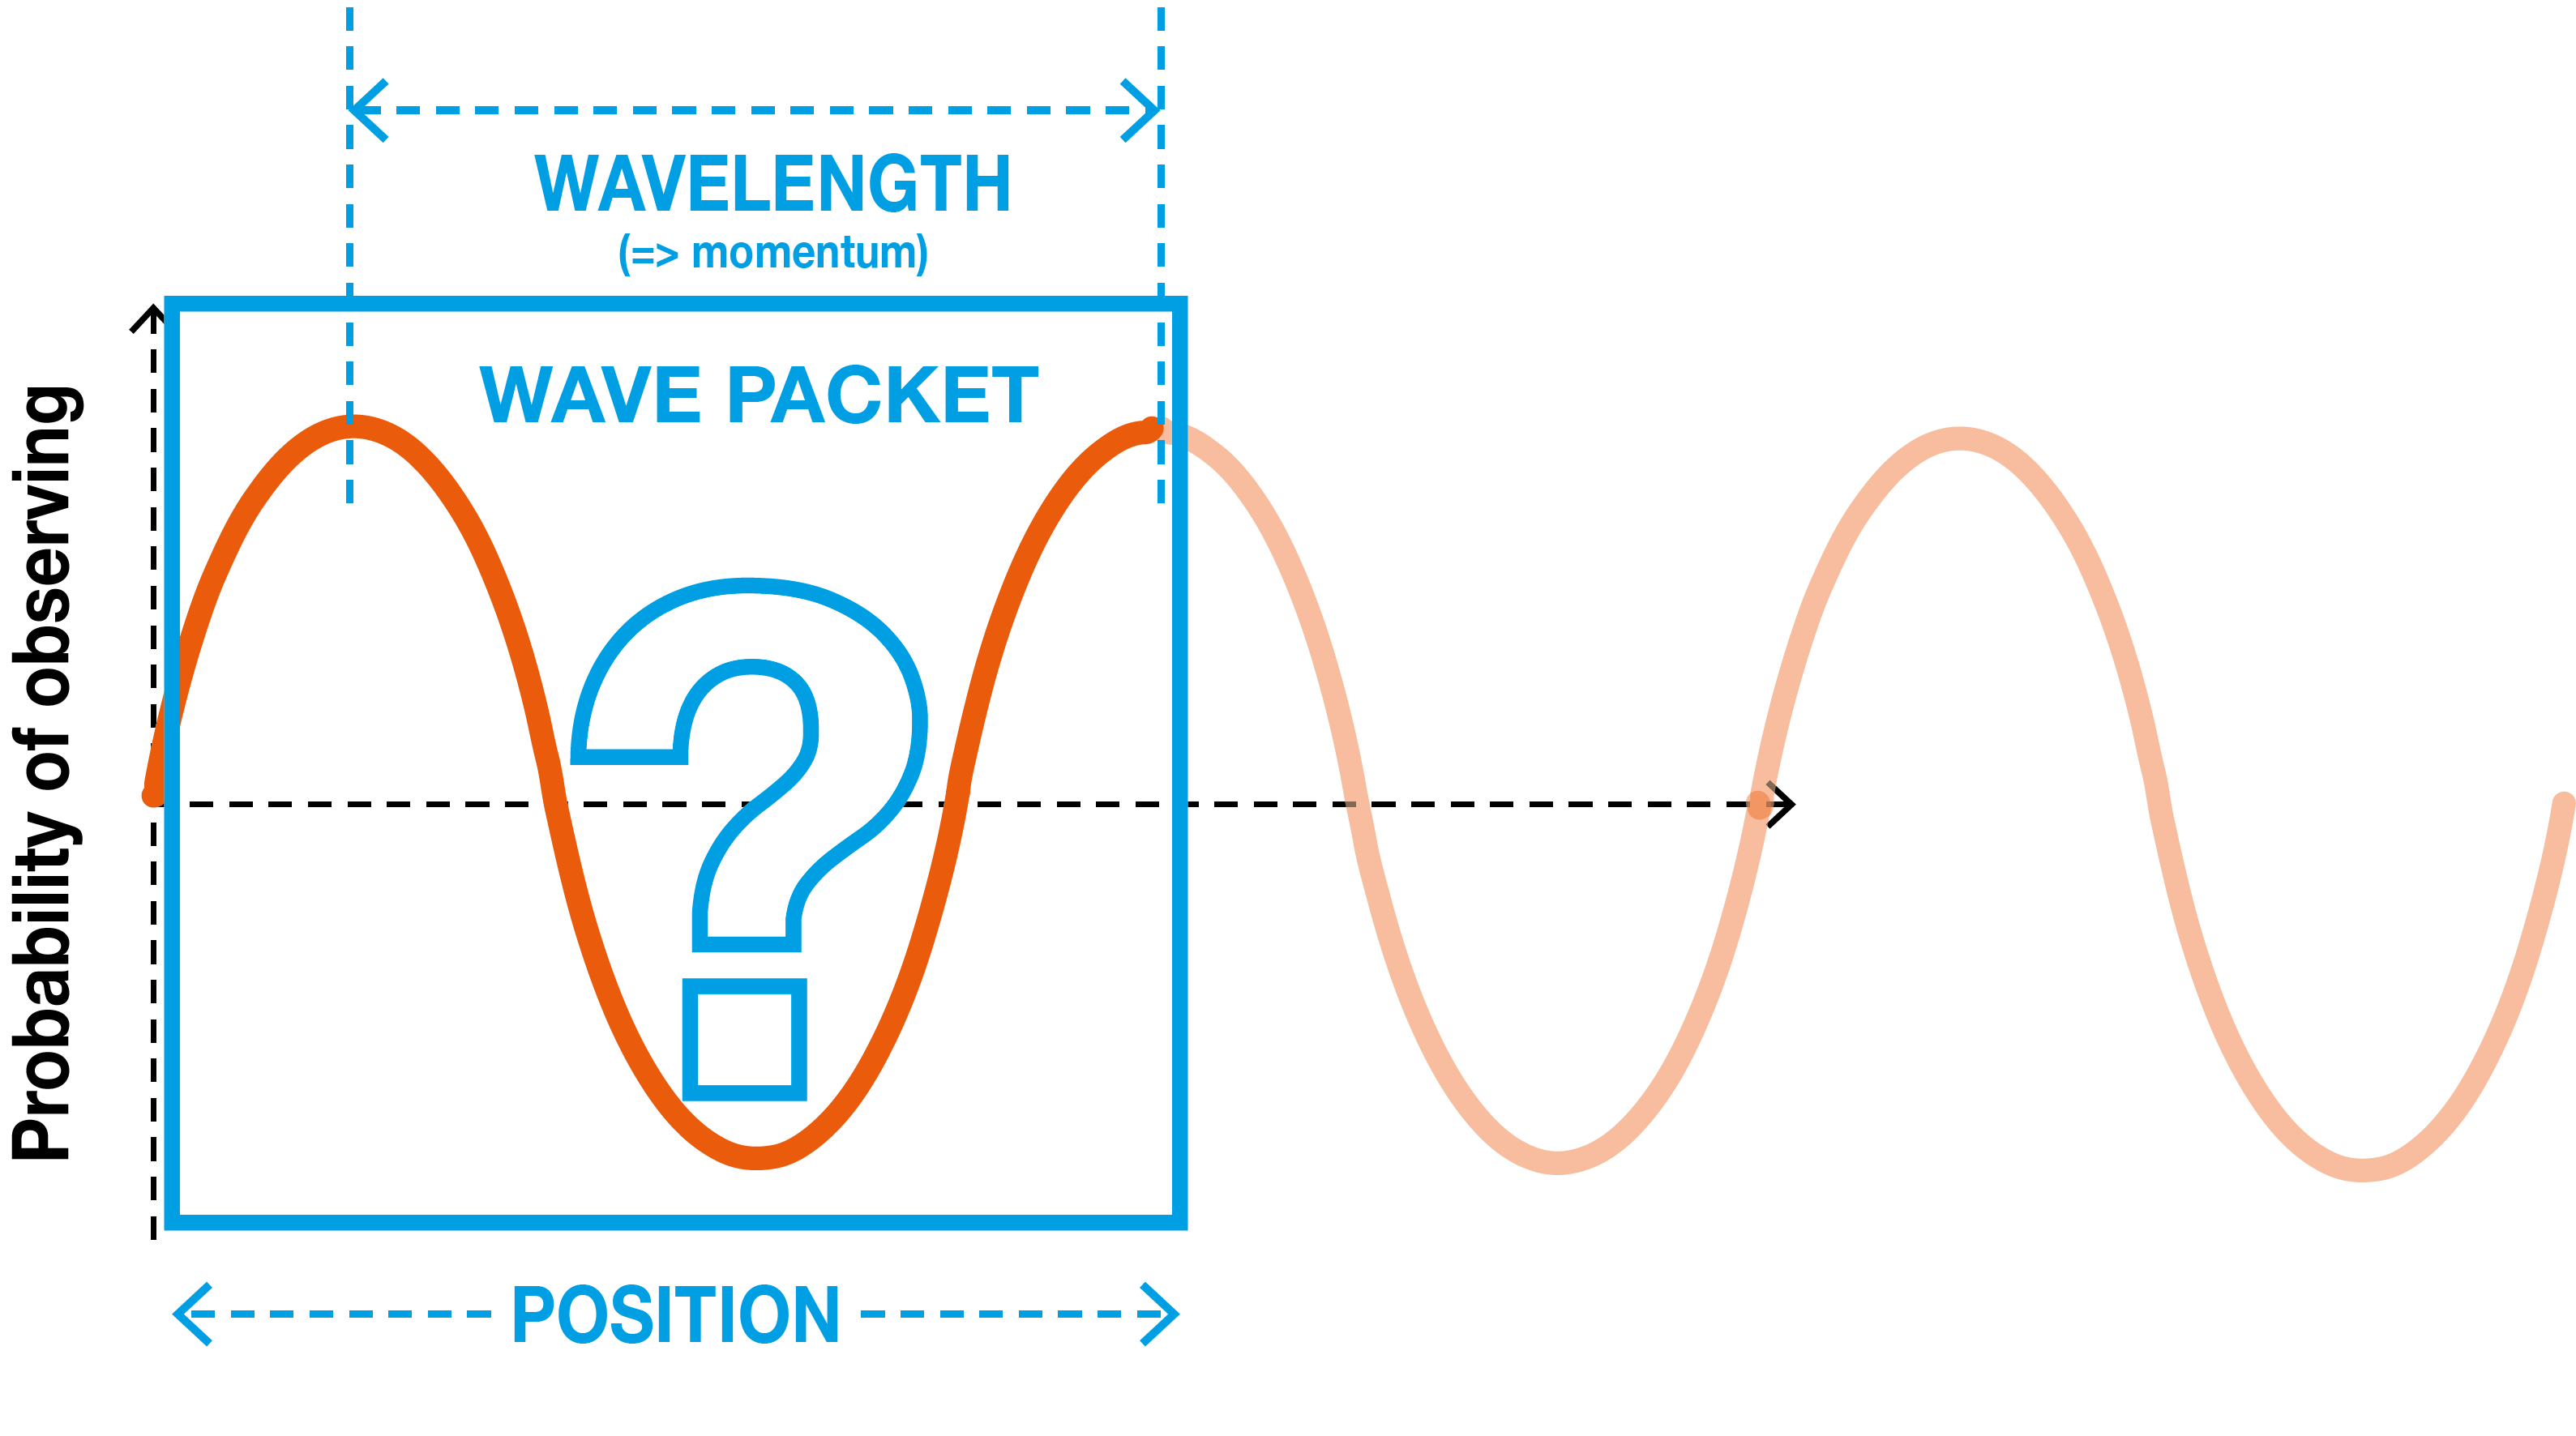 Demonstrating what a wave packet is and where to how to interpret its wavelength and position from a wave chart